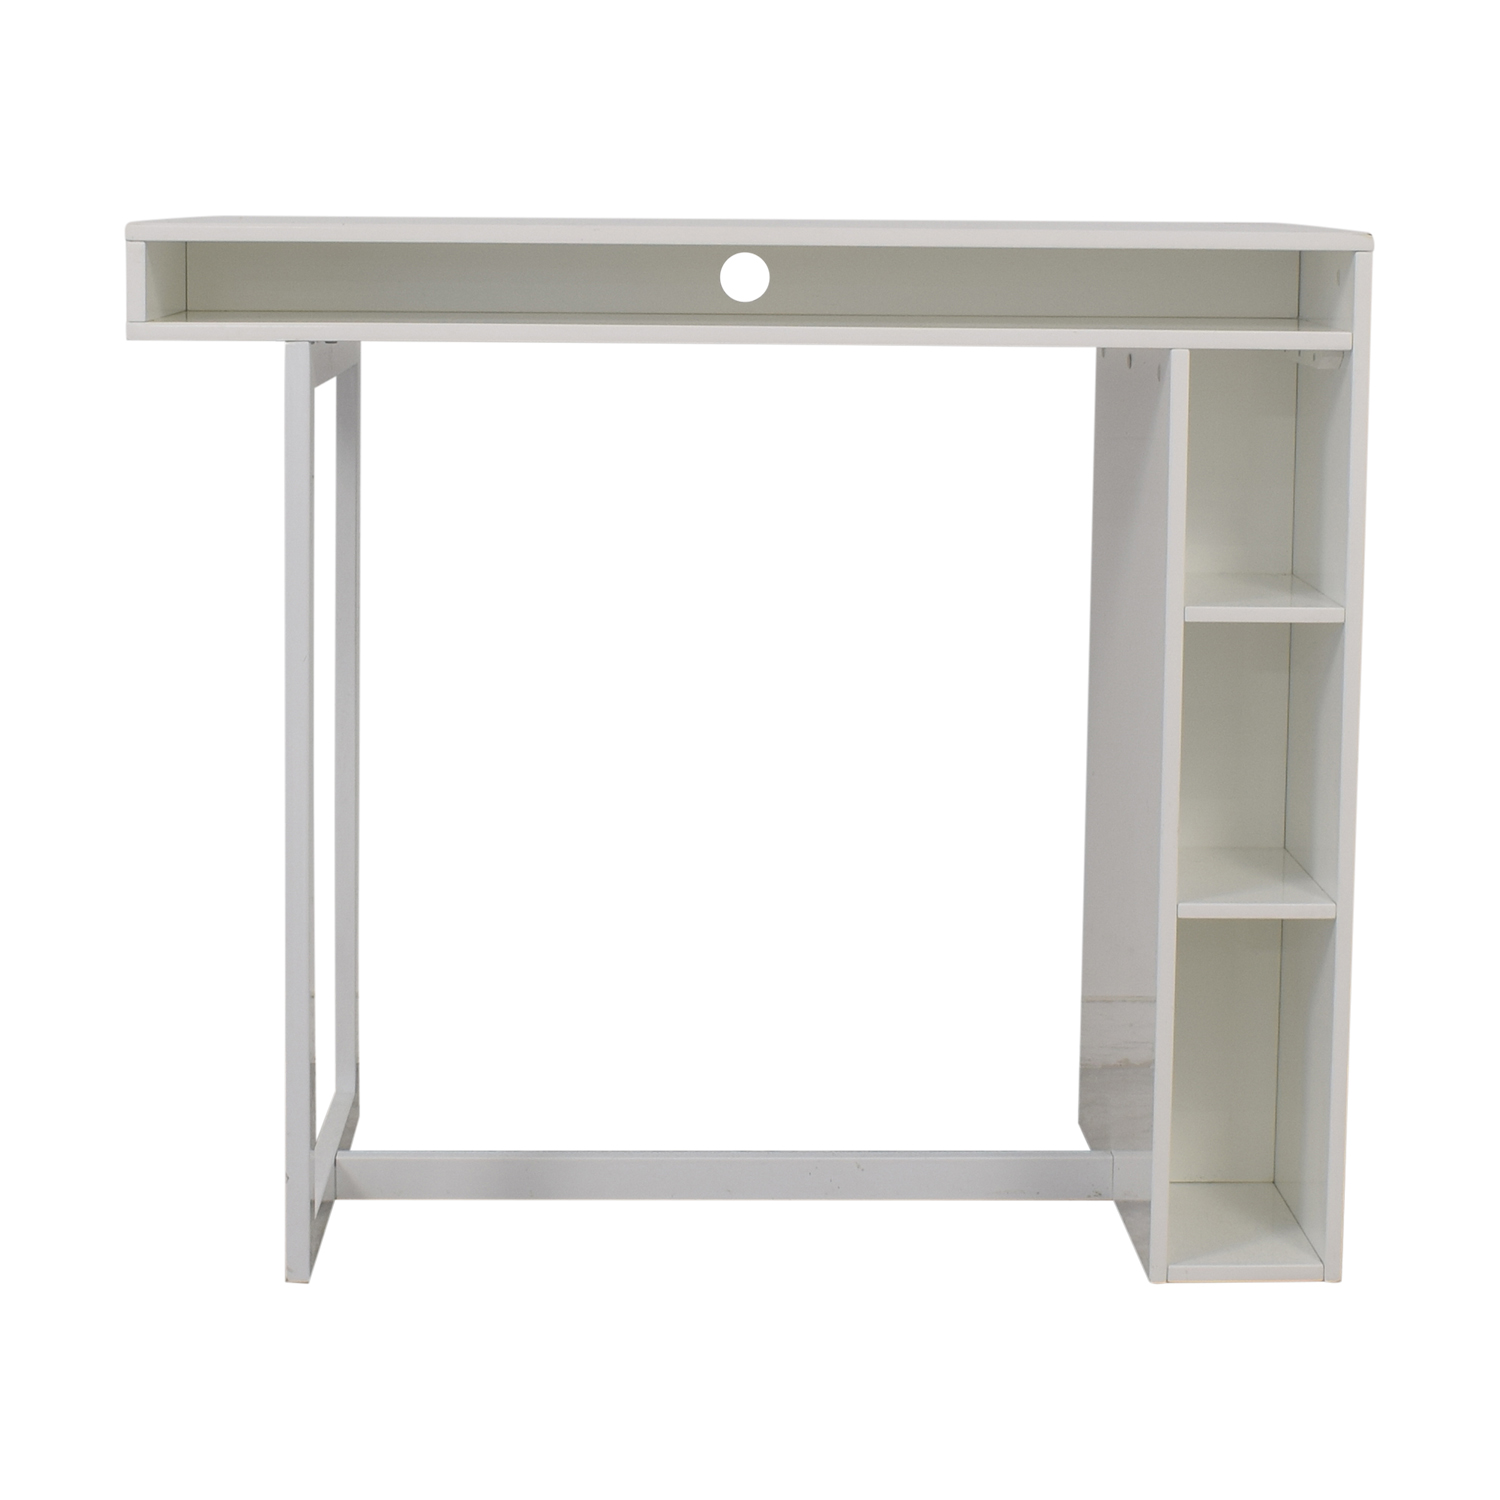 CB2 CB2 Public White Counter Dining Table price